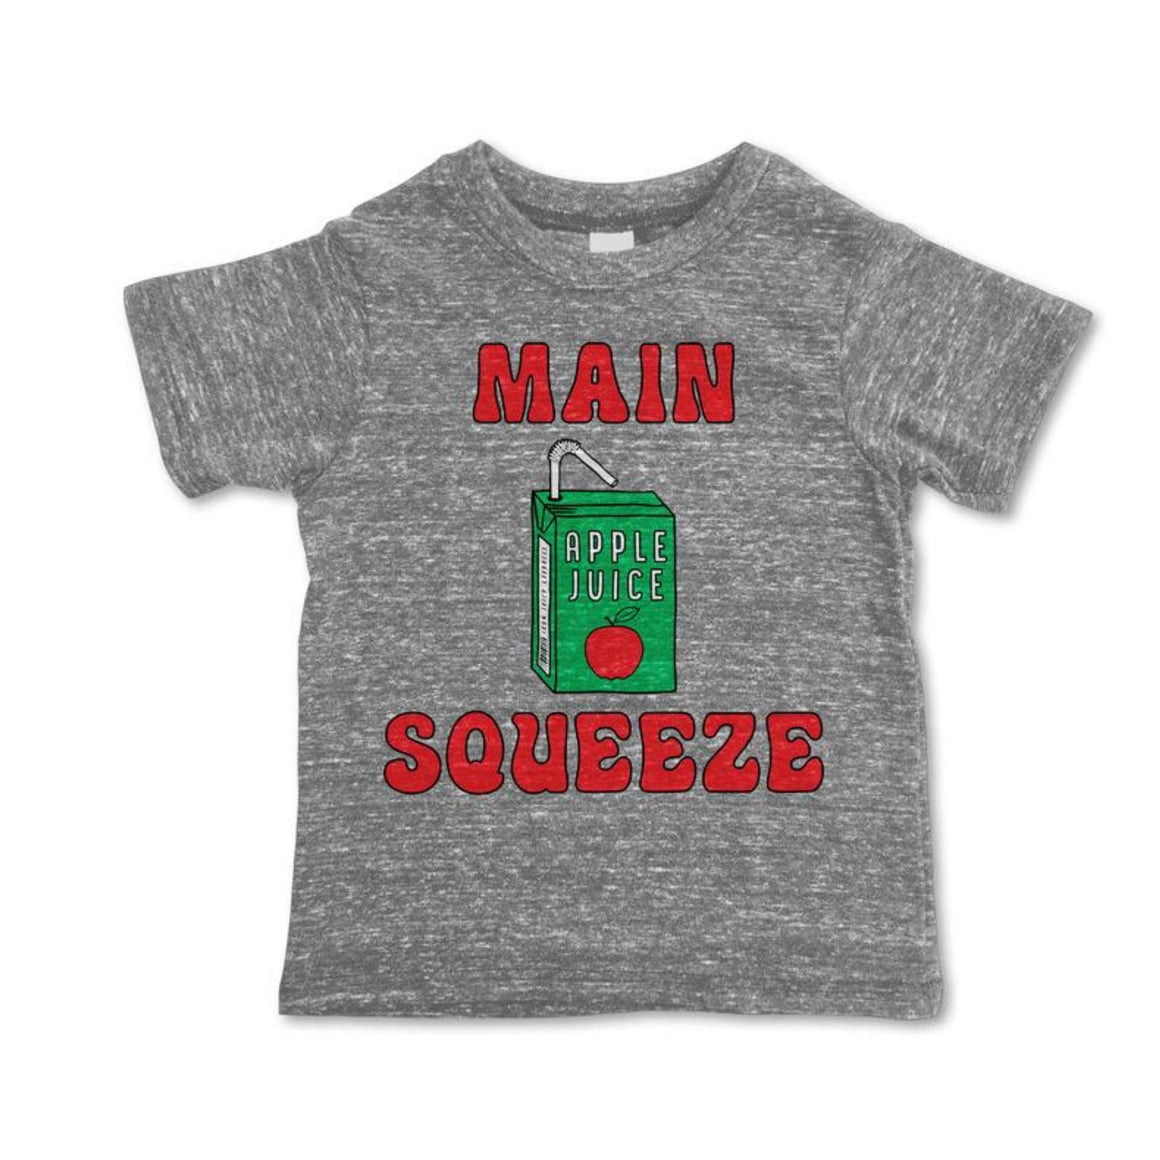 Rivet Apparel Co. - Main Squeeze Unisex T-shirt Short Sleeve Shirts Rivet Apparel Co.